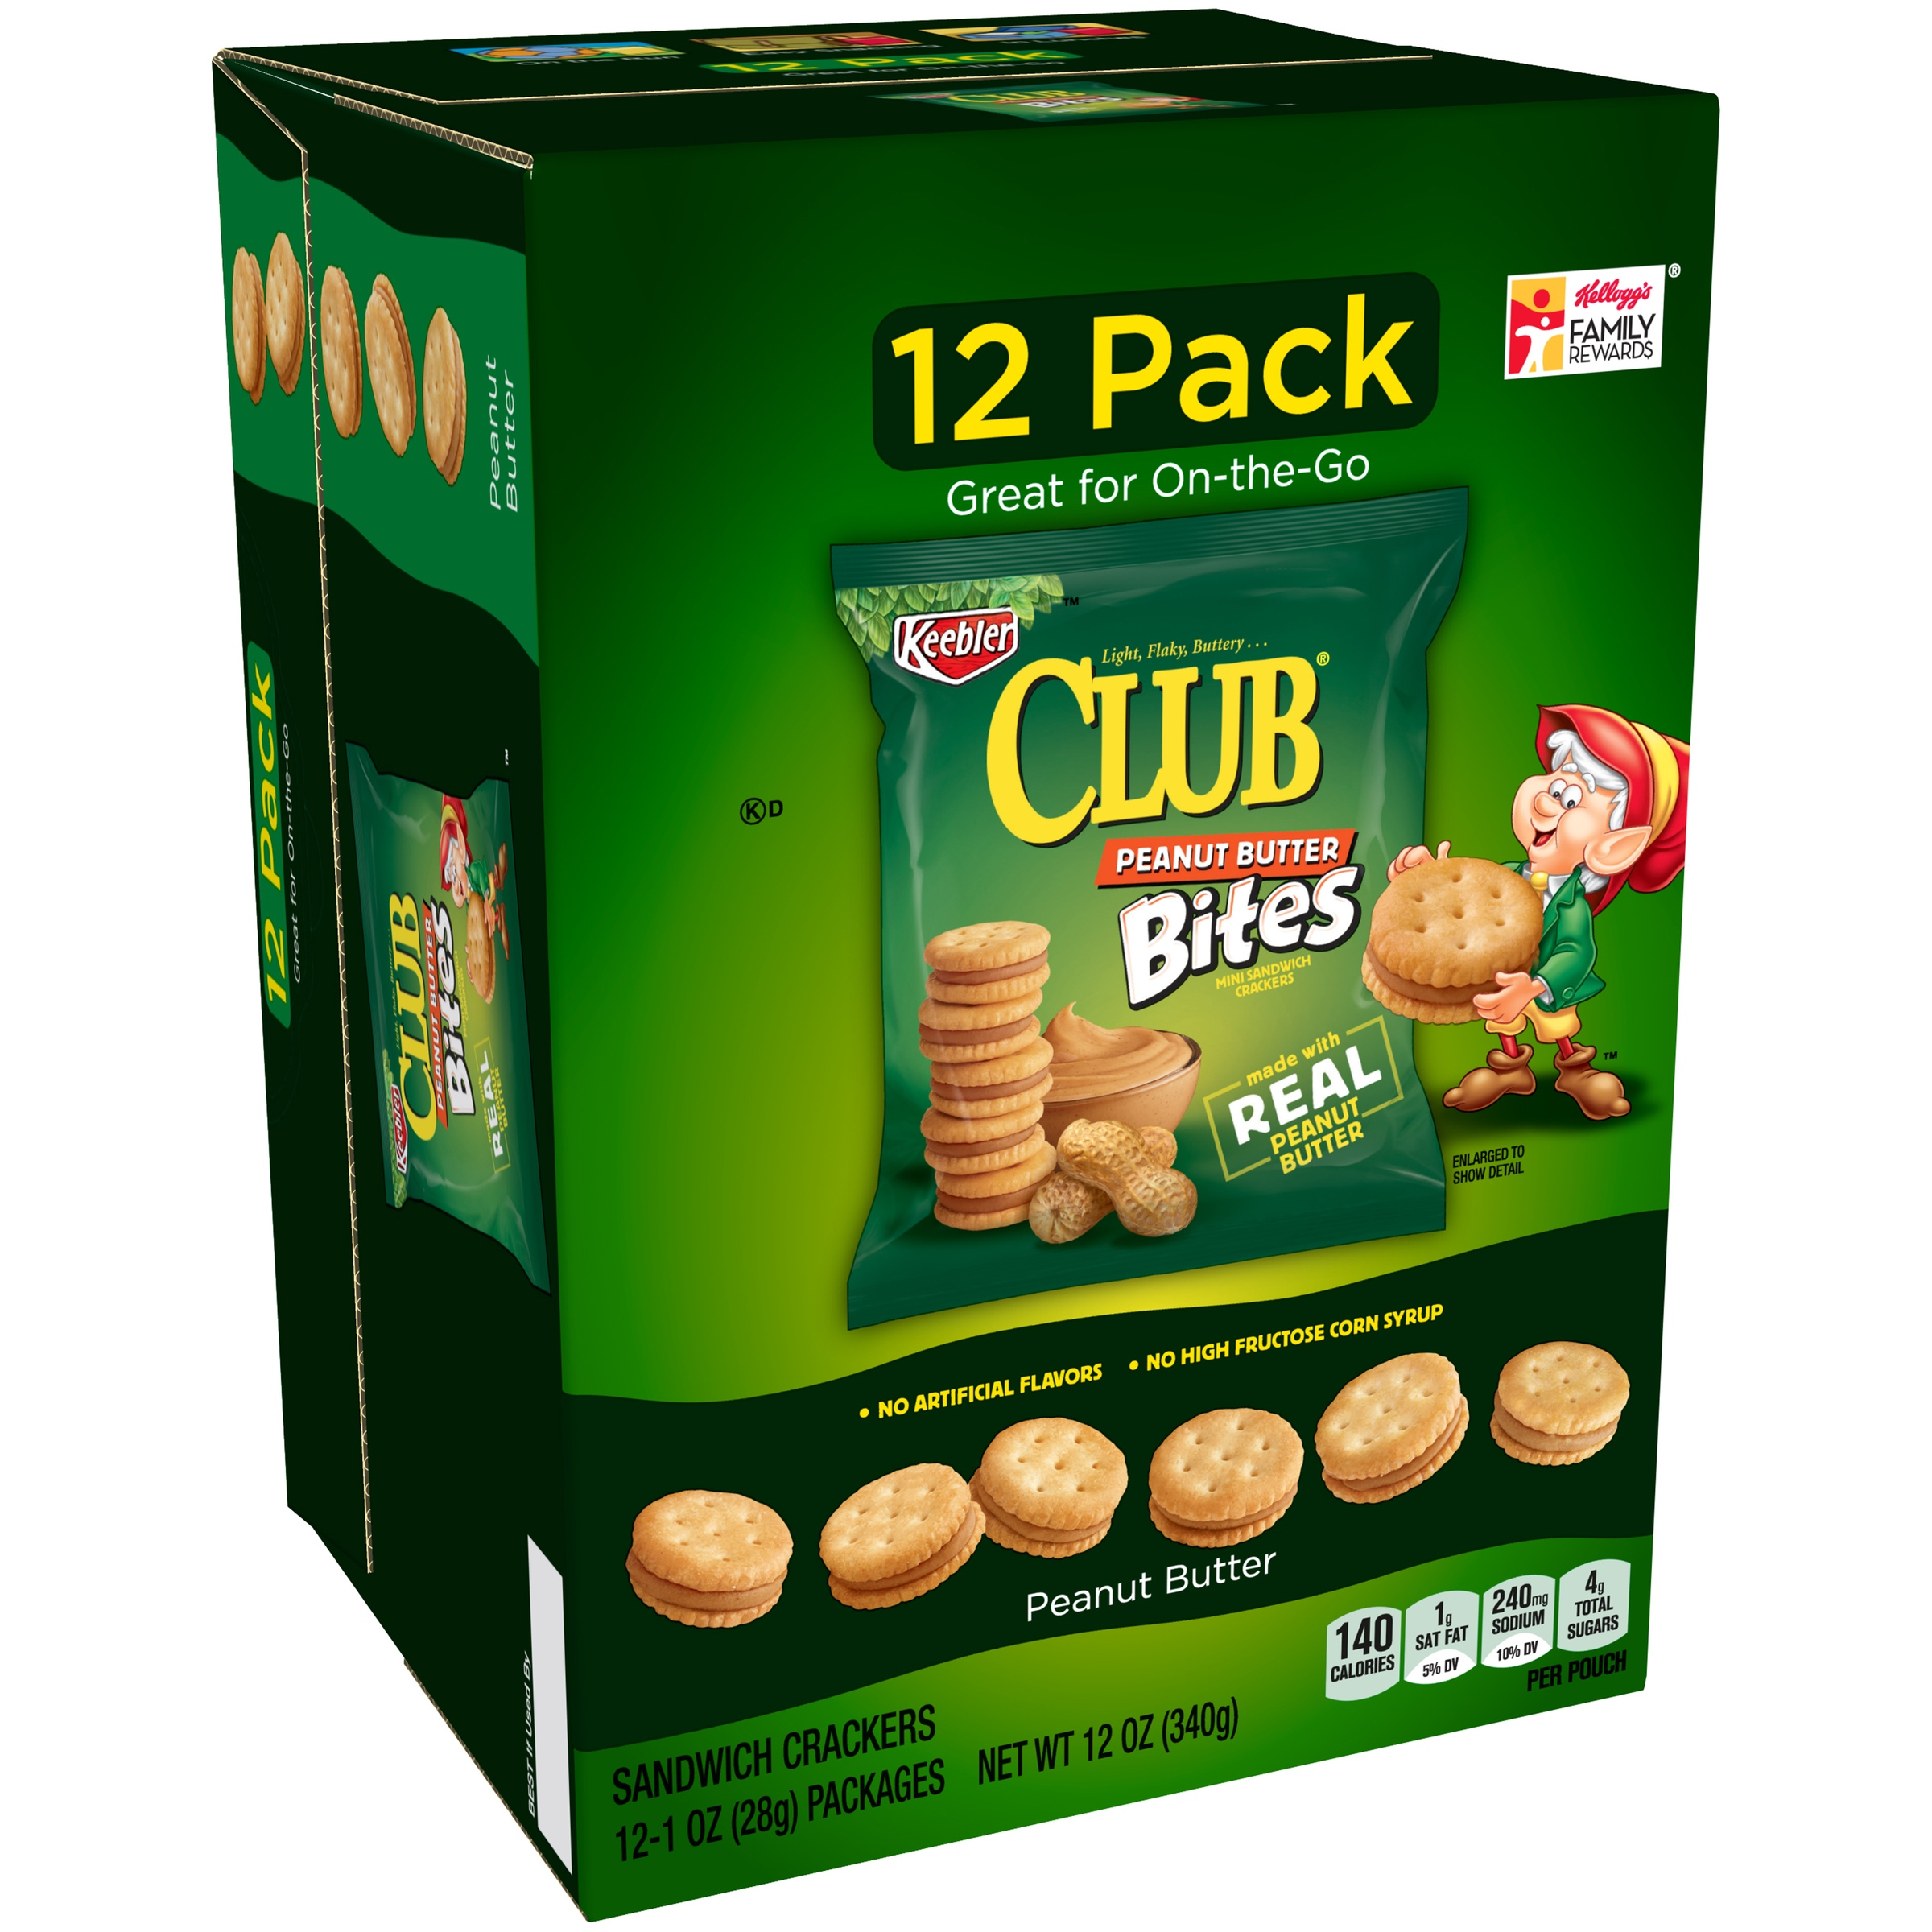 Keebler Club Peanut Butter Bites Sandwich Crackers 12-1 oz. Bags